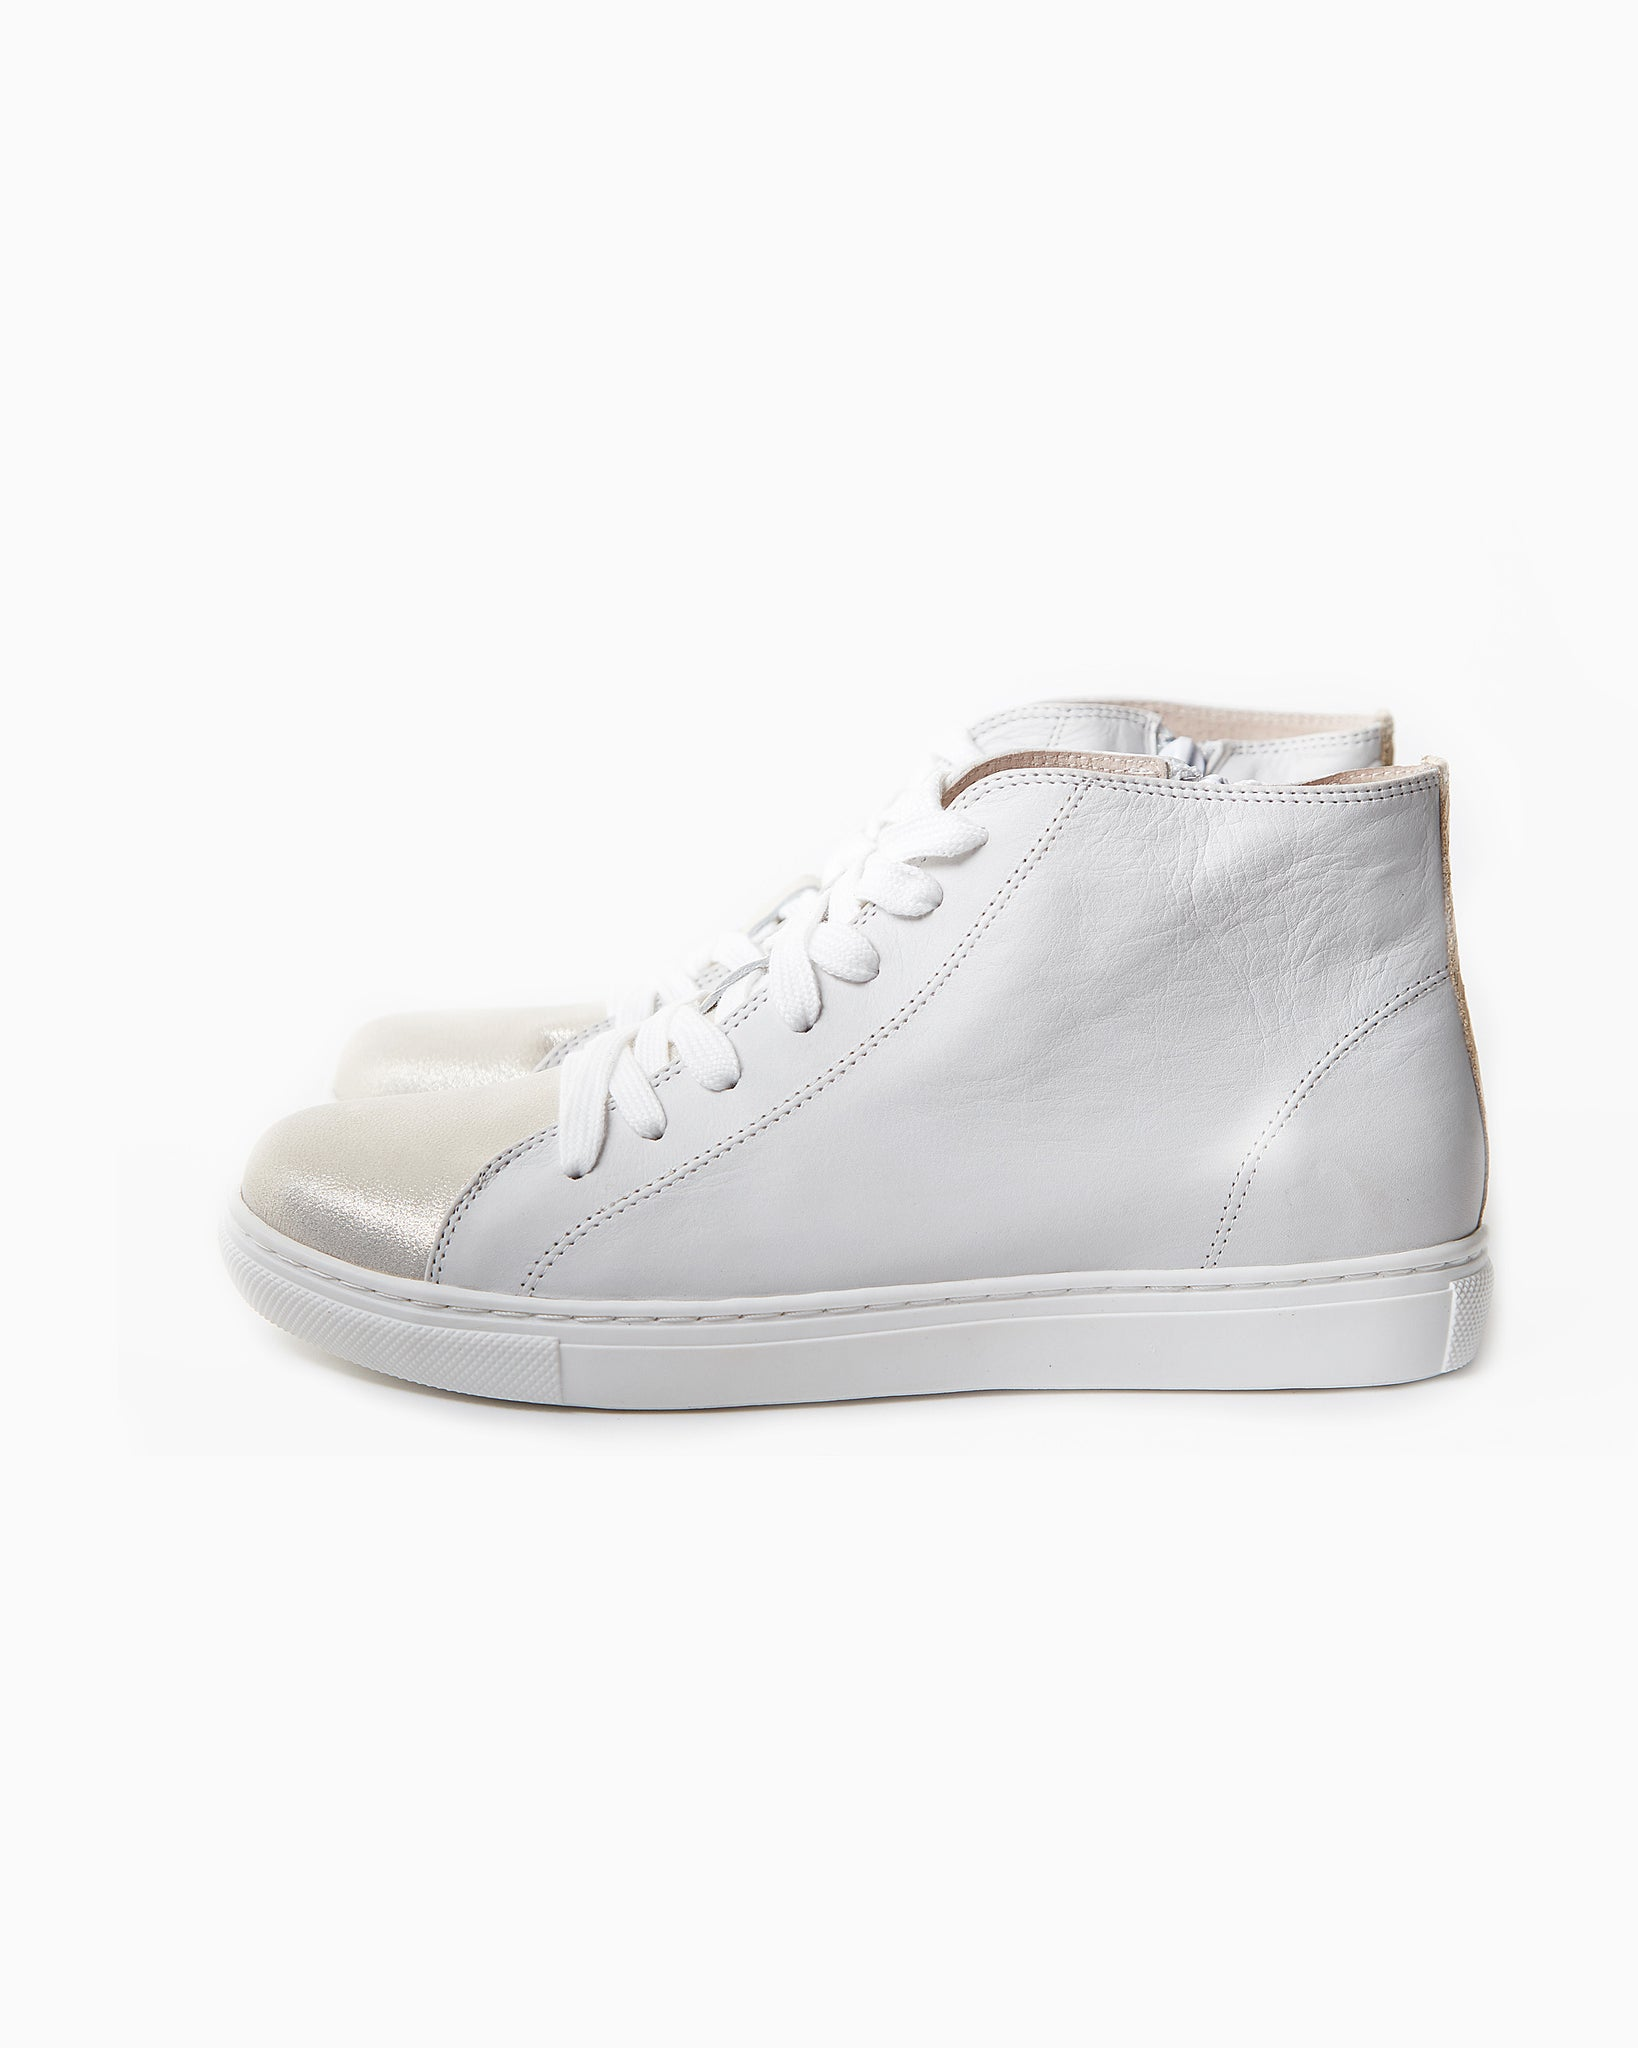 Uma Leather Sneaker